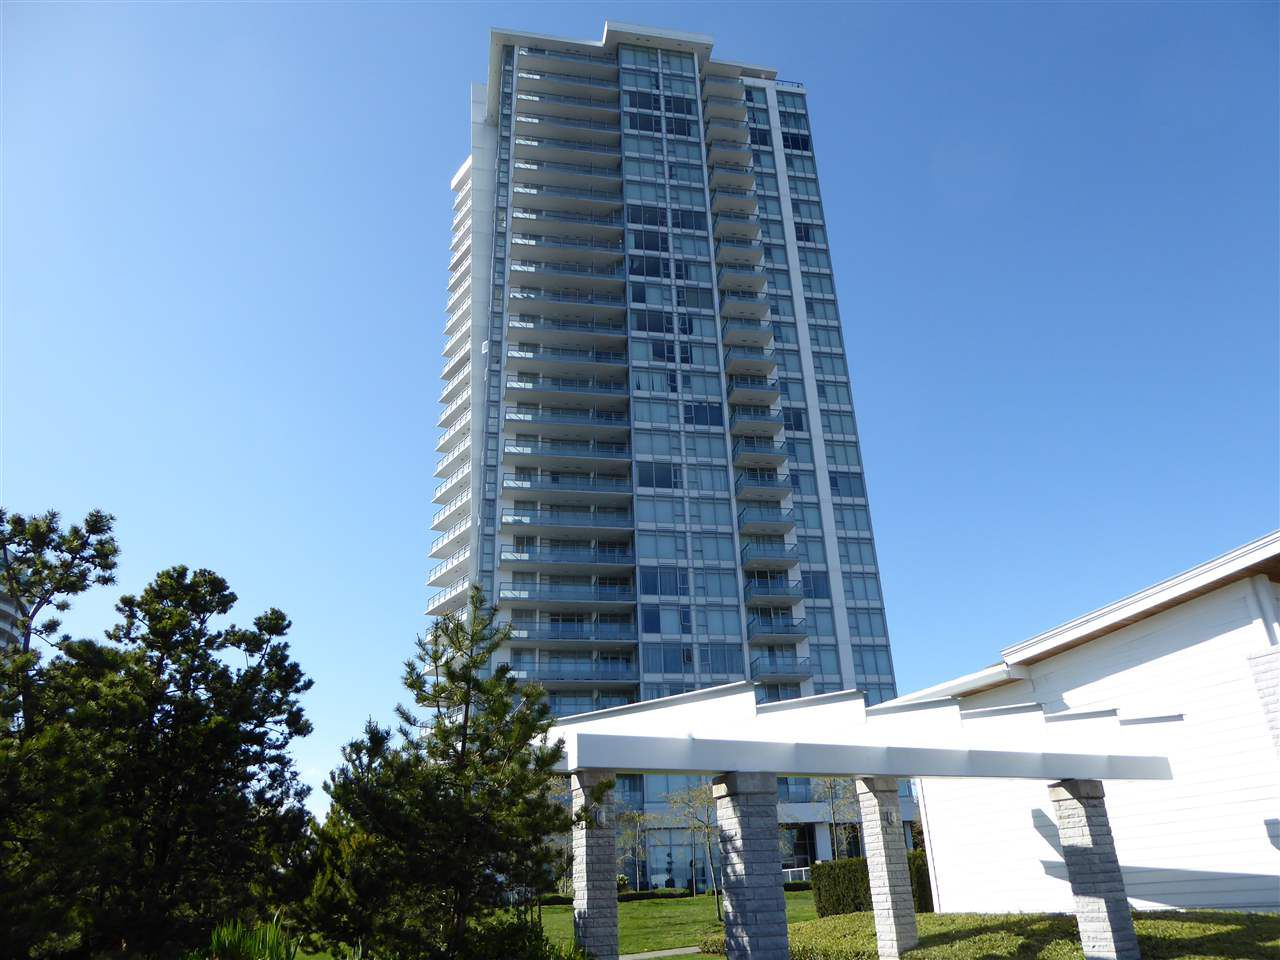 """Main Photo: 1702 6688 ARCOLA Street in Burnaby: Highgate Condo for sale in """"LUMA BY POLYGON"""" (Burnaby South)  : MLS®# R2052254"""